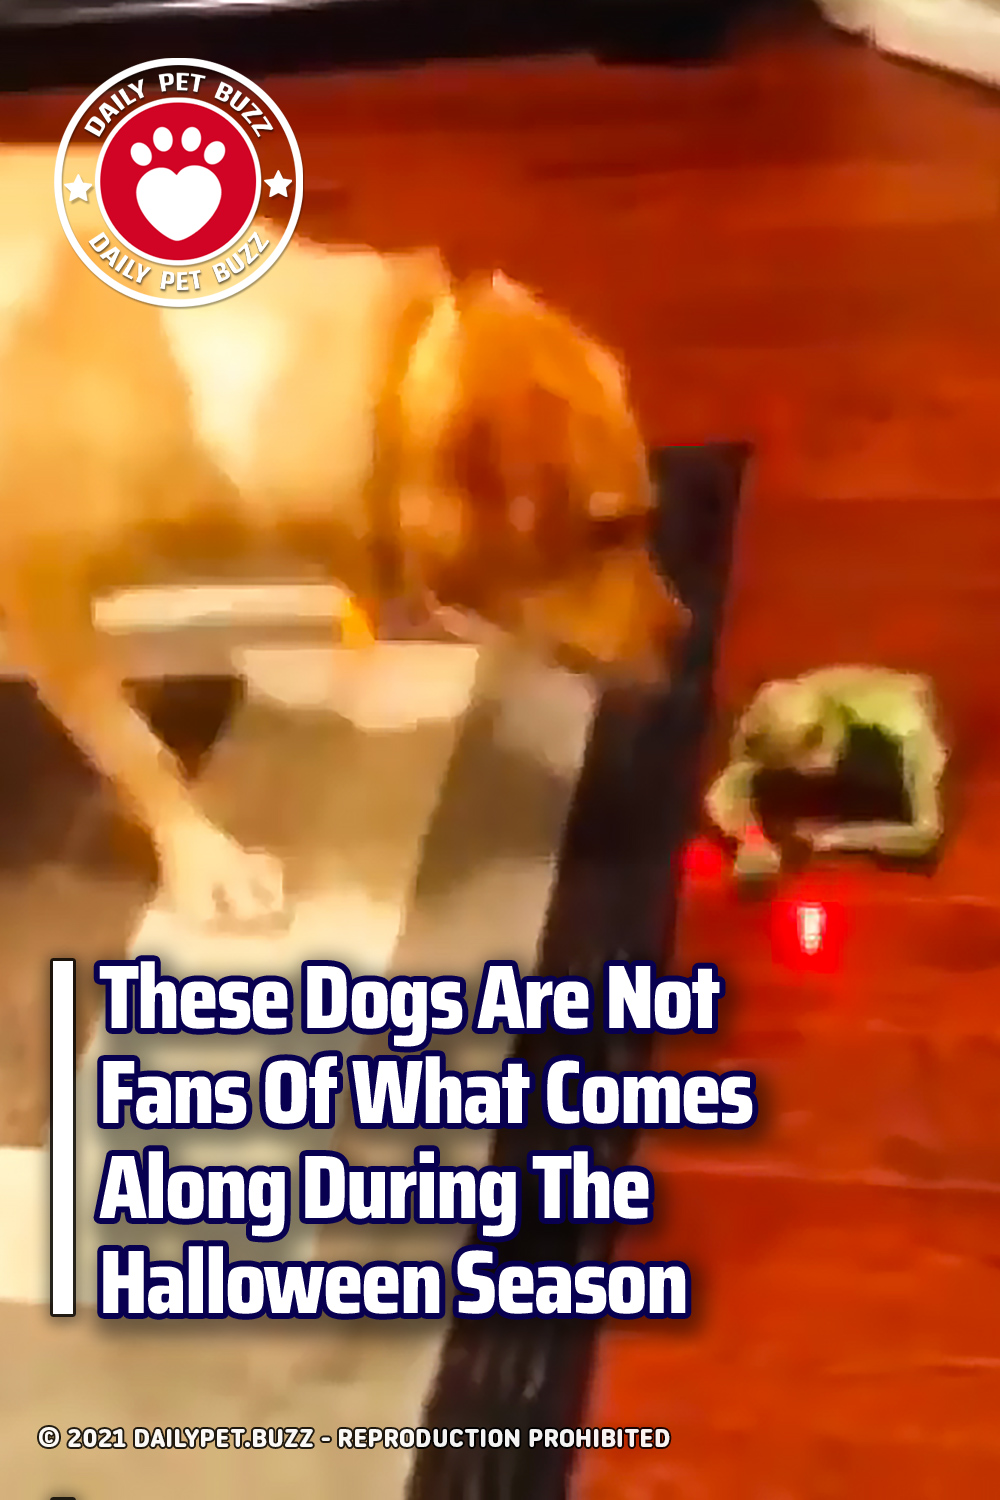 These Dogs Are Not Fans Of What Comes Along During The Halloween Season